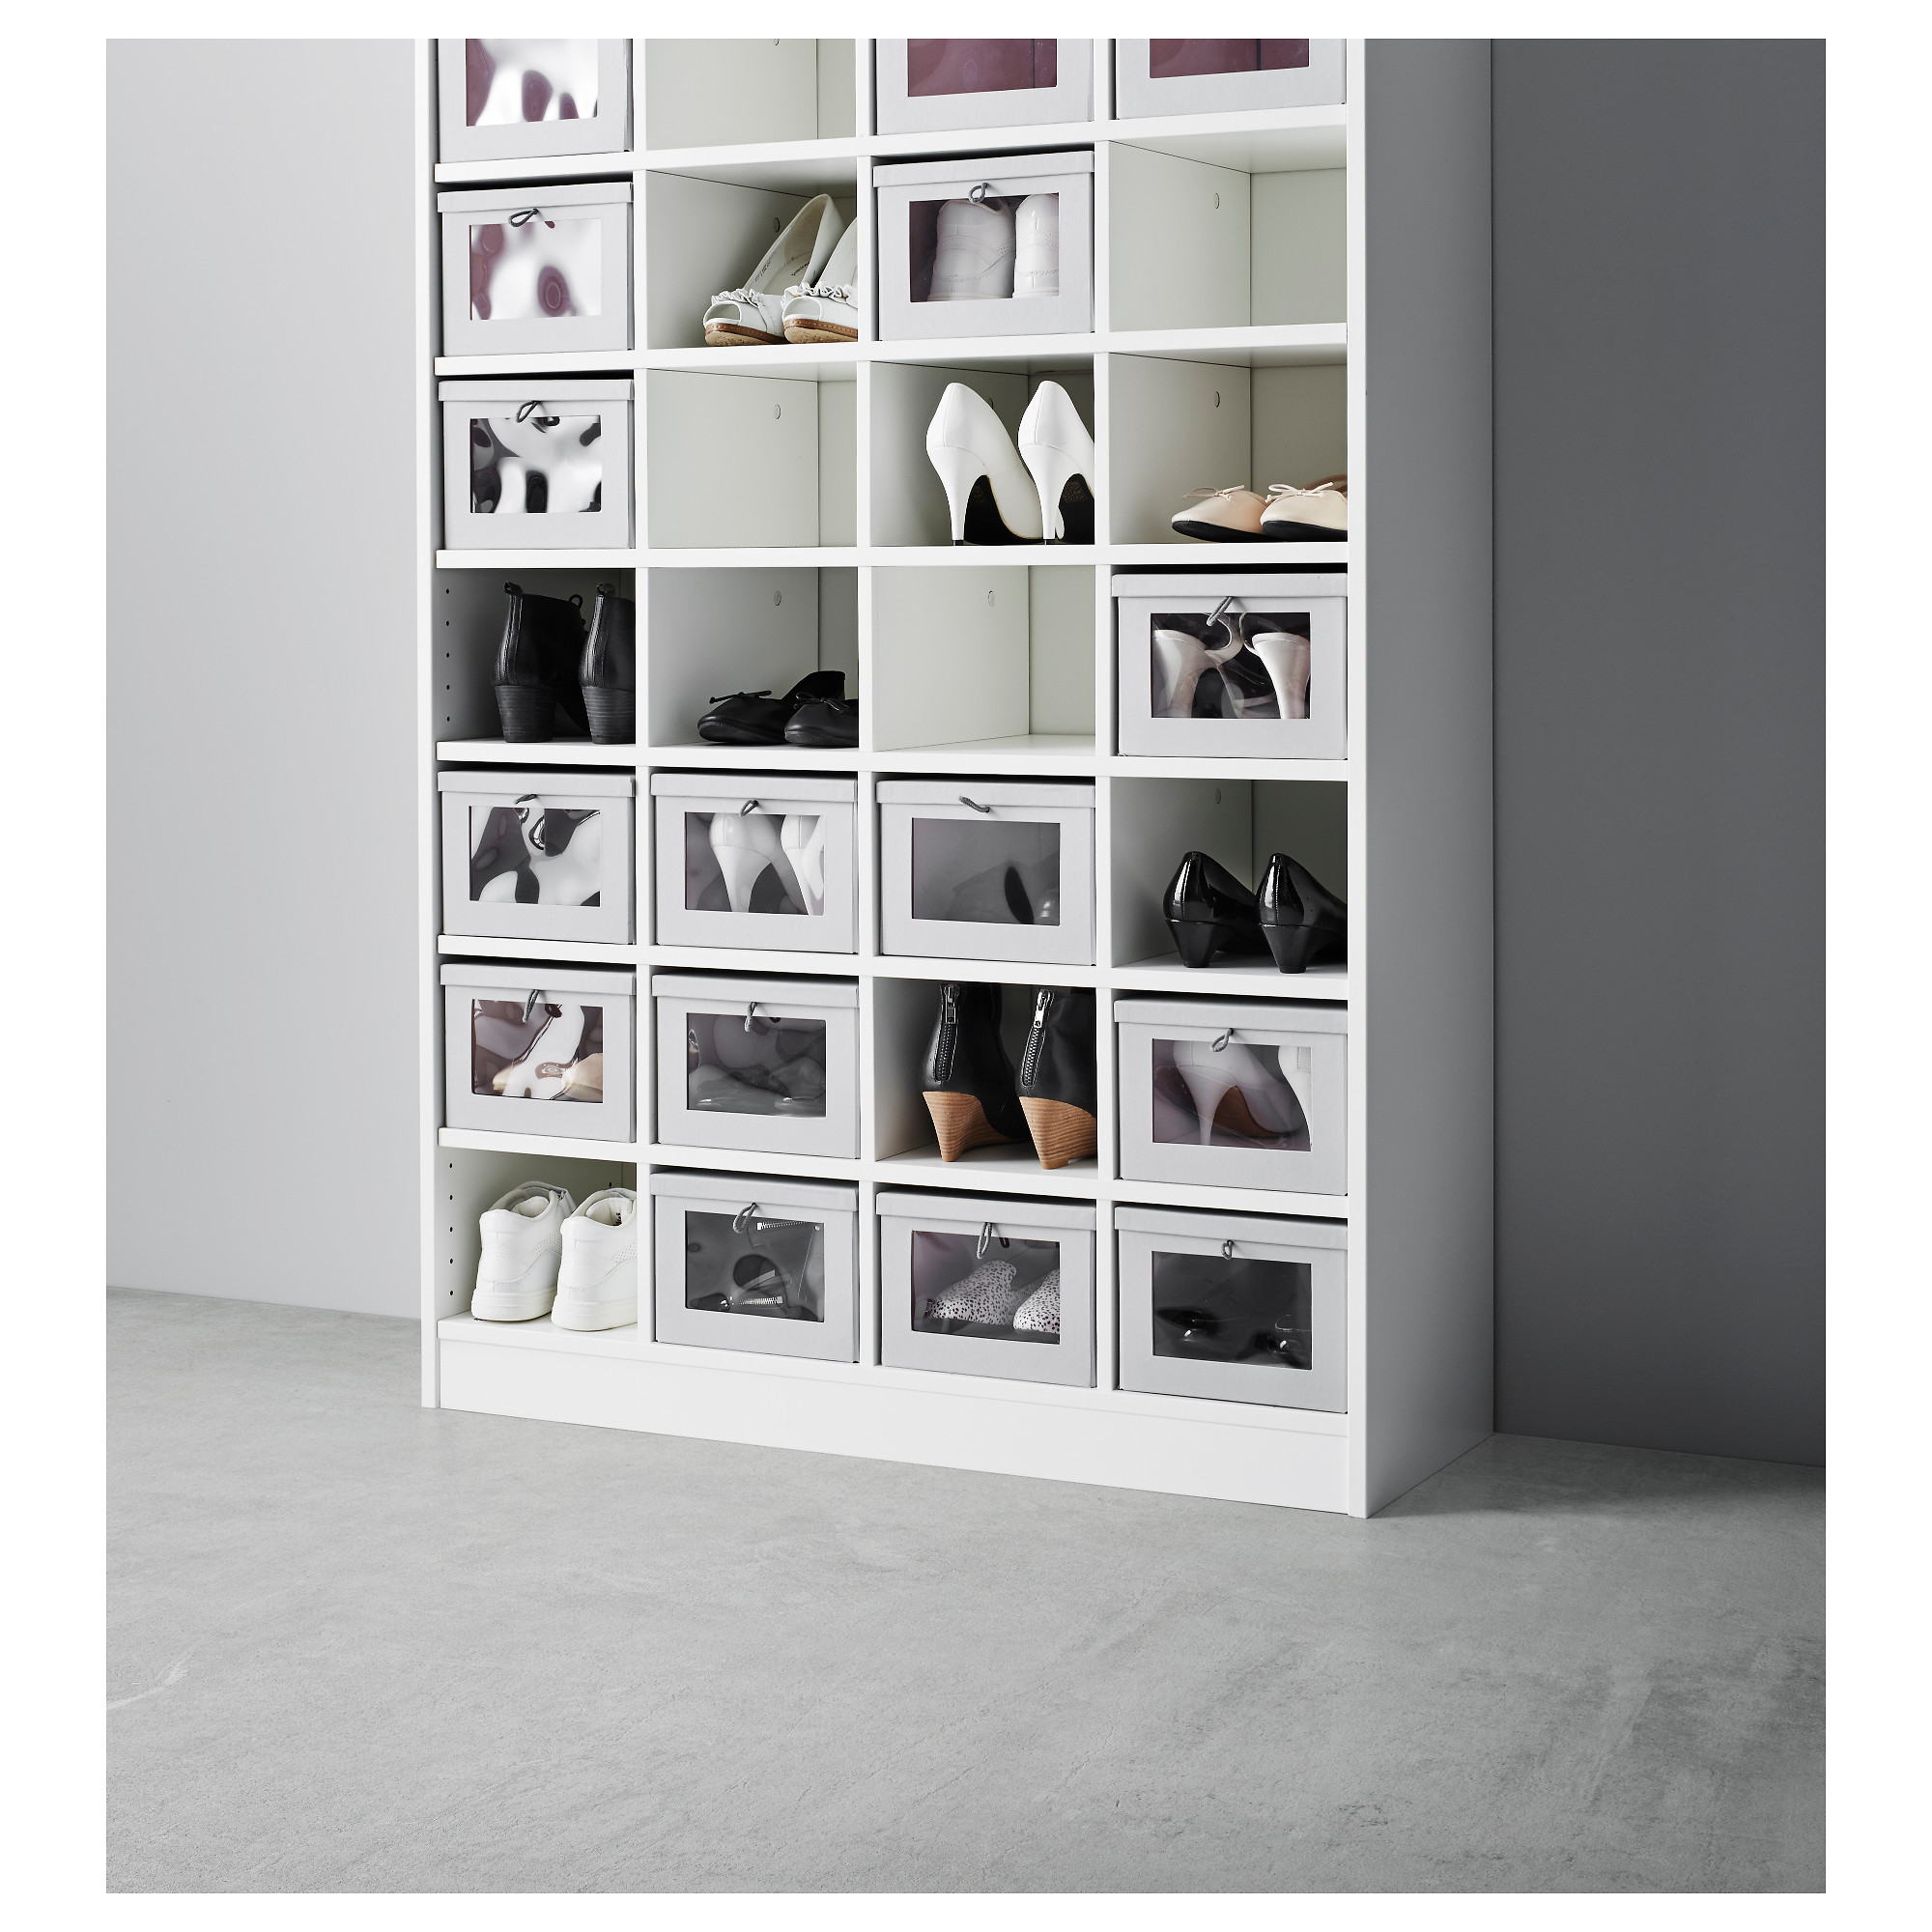 KOMPLEMENT Shelf Insert White IKEA Best Closet Systems, No Closet  Solutions, Shoe Closet,